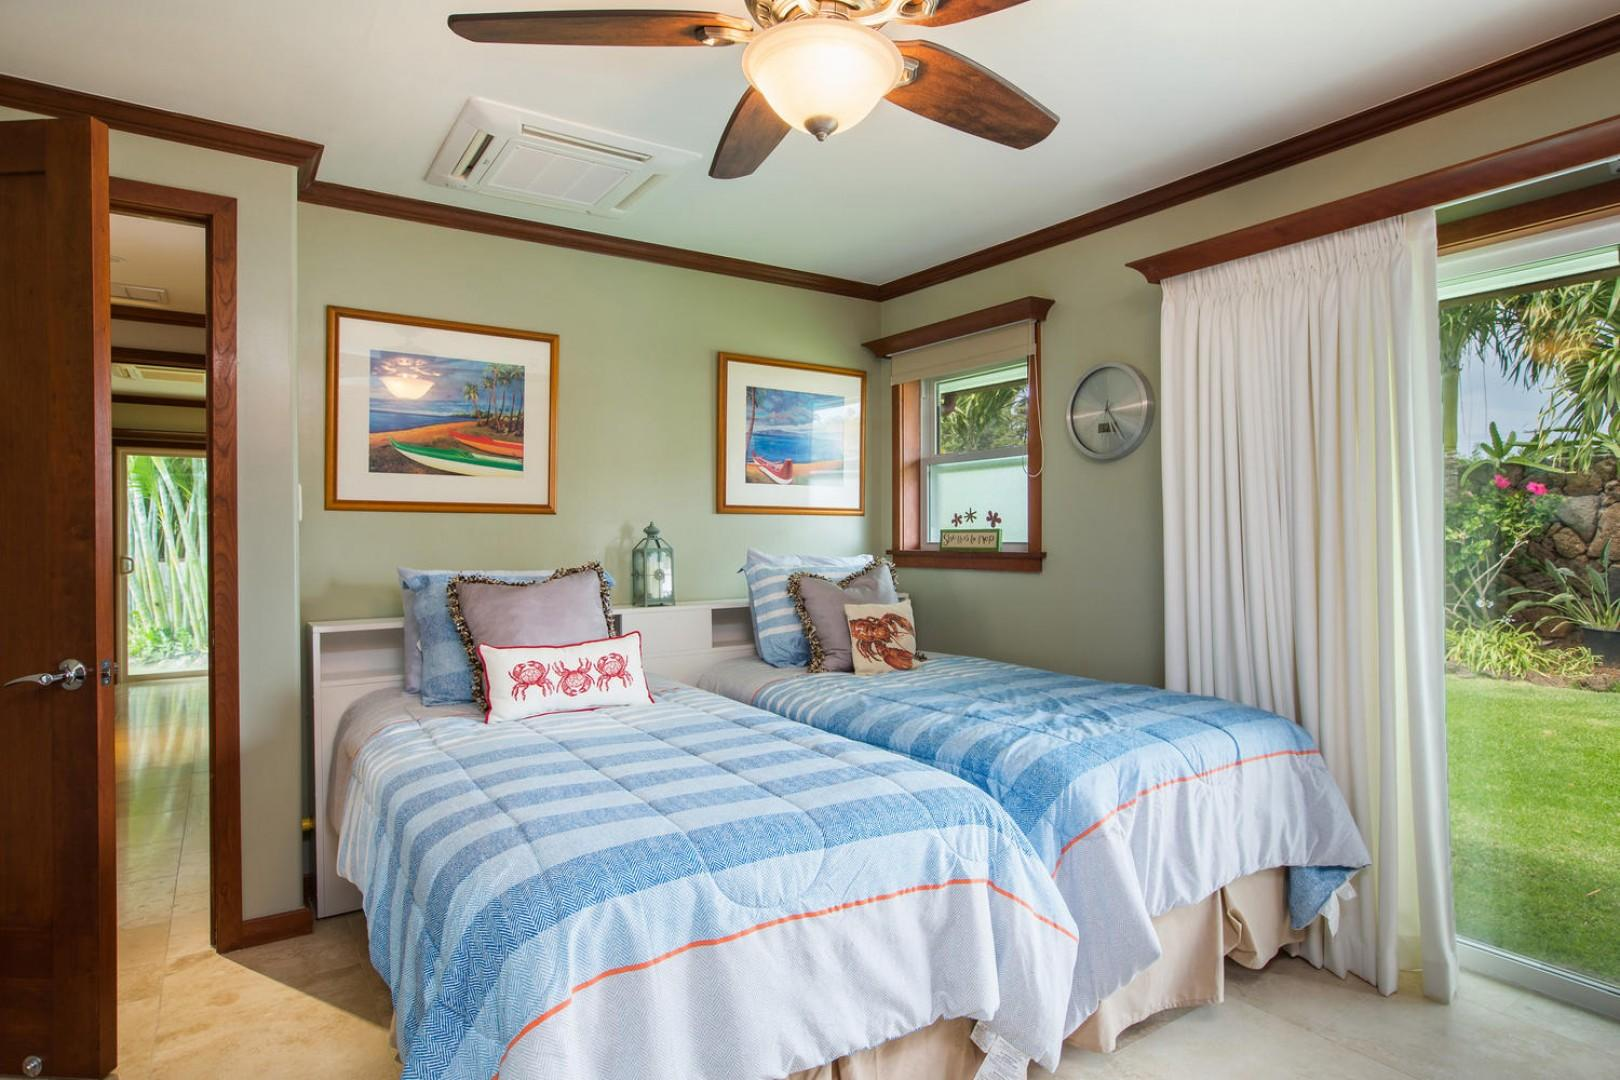 The twin bedroom with a television and sliding door to the lawn.